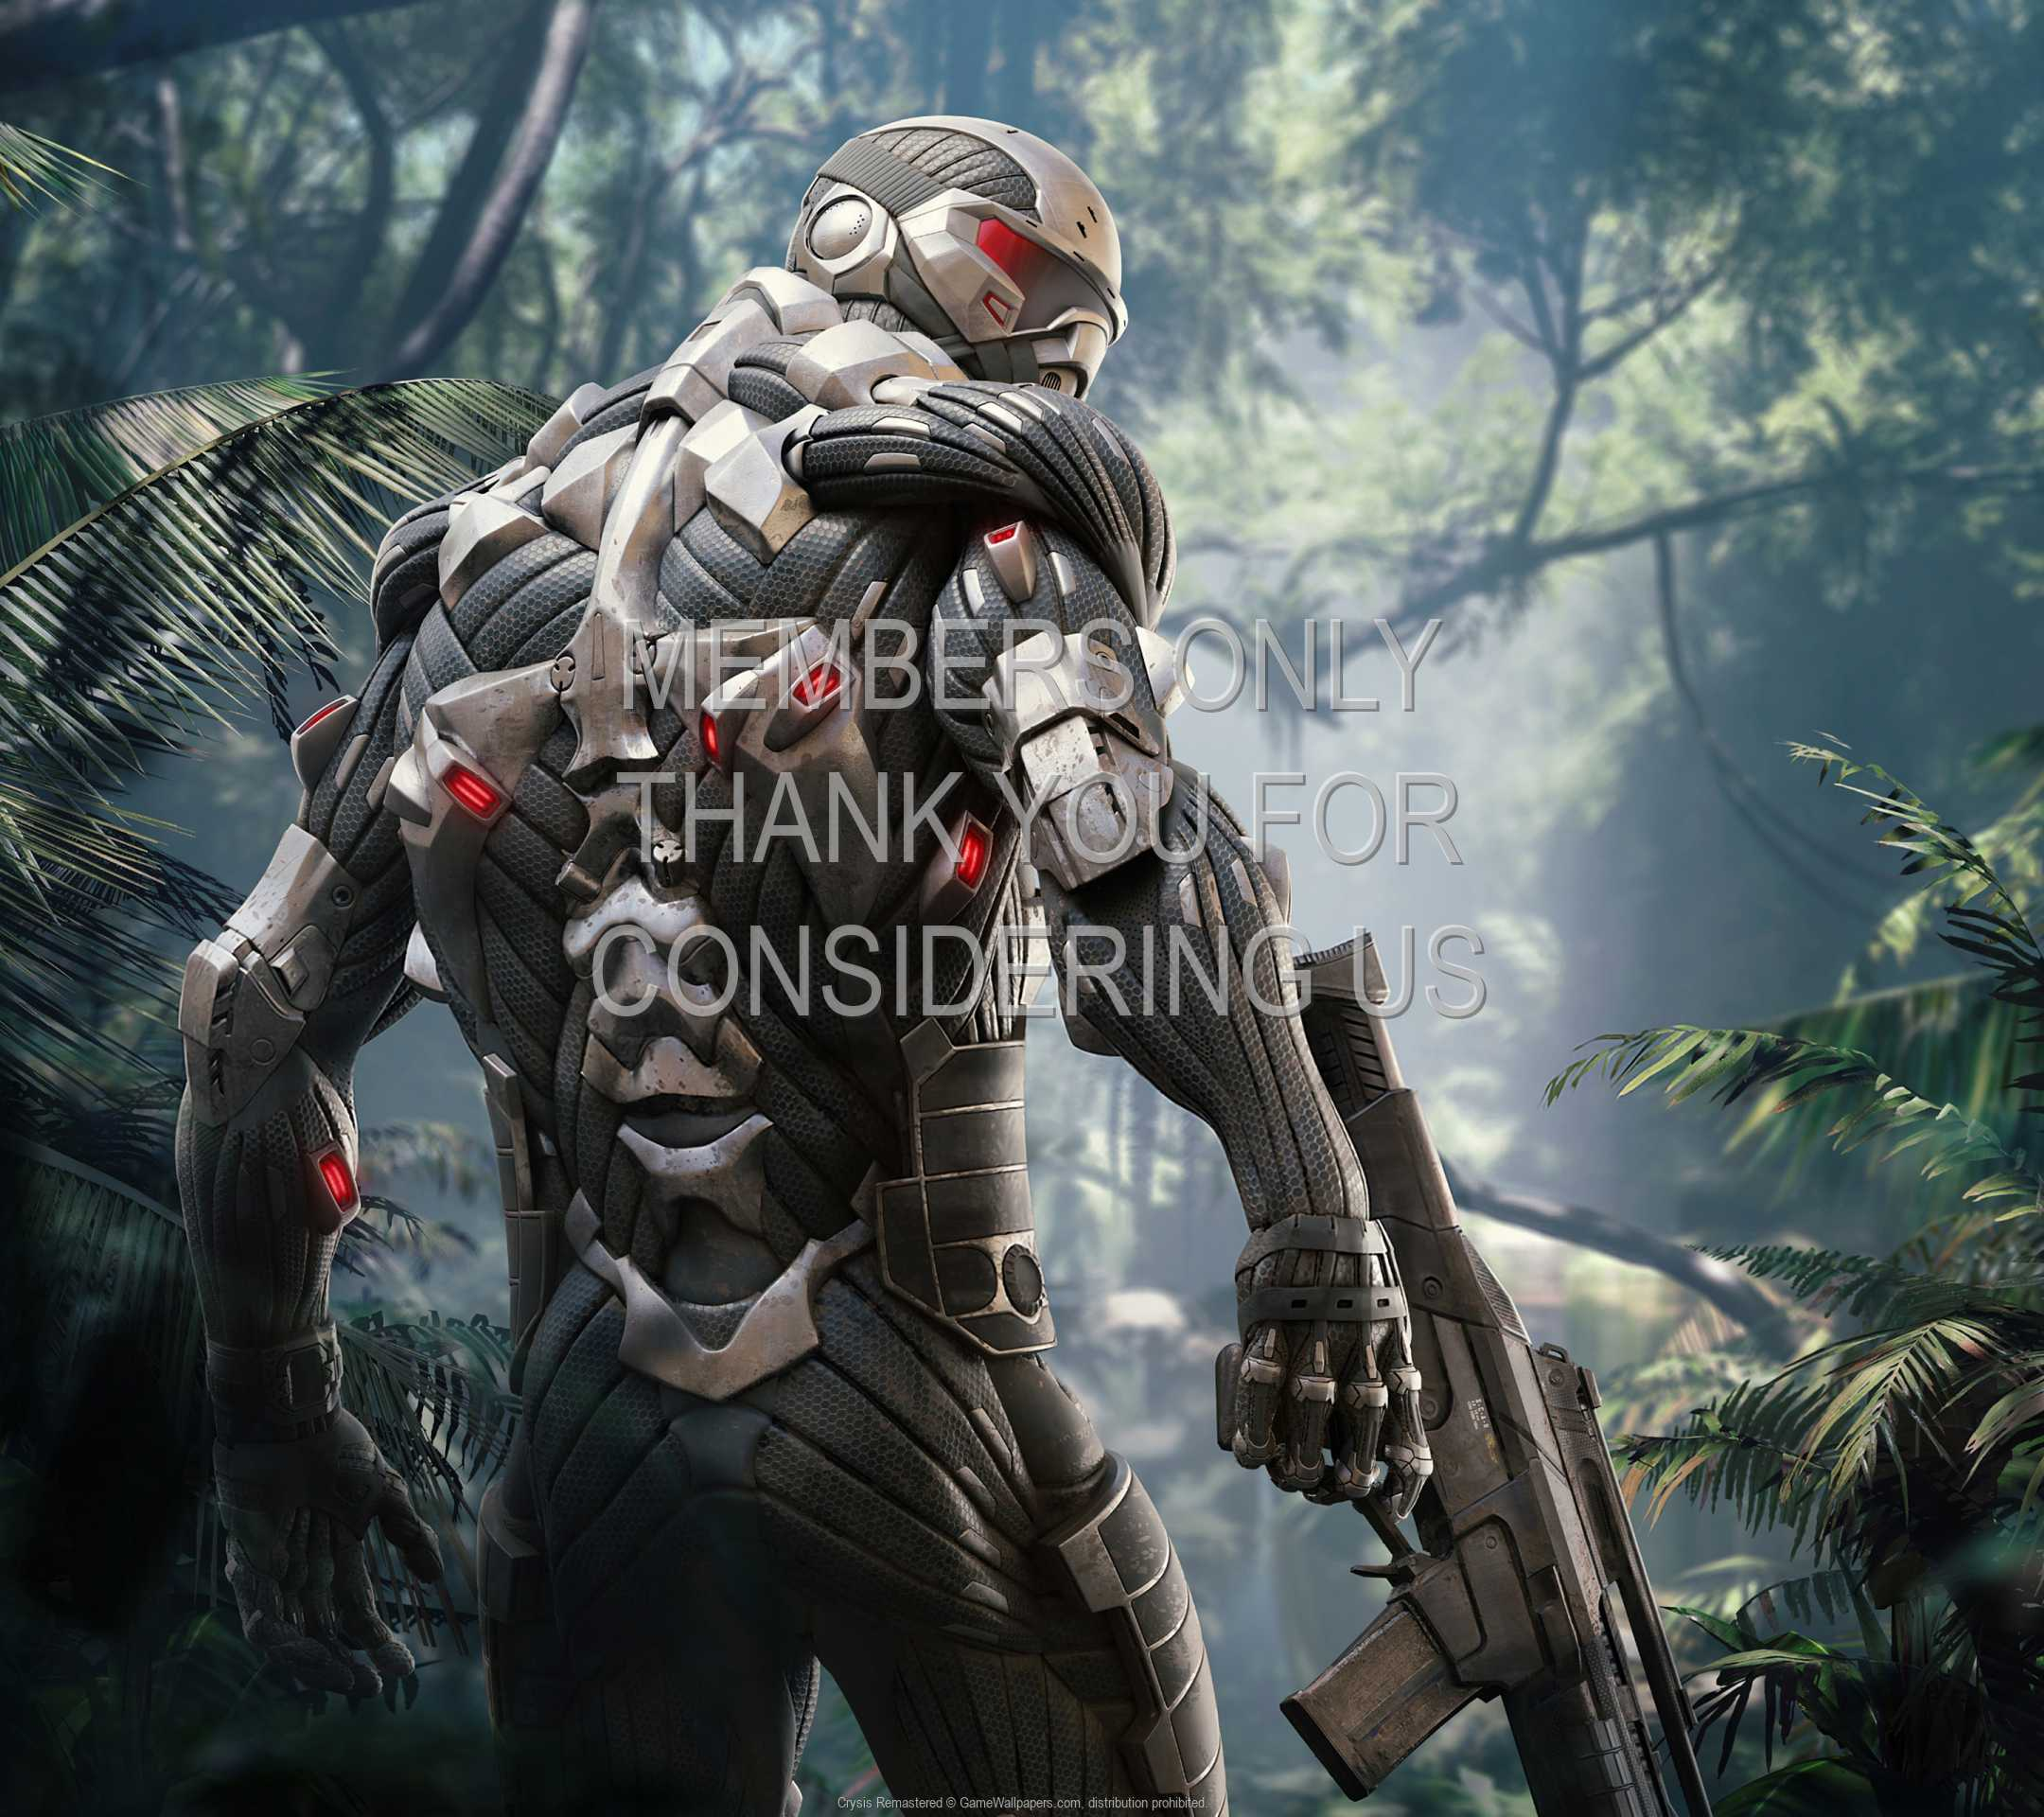 Crysis: Remastered 1080p Horizontal Mobile wallpaper or background 01